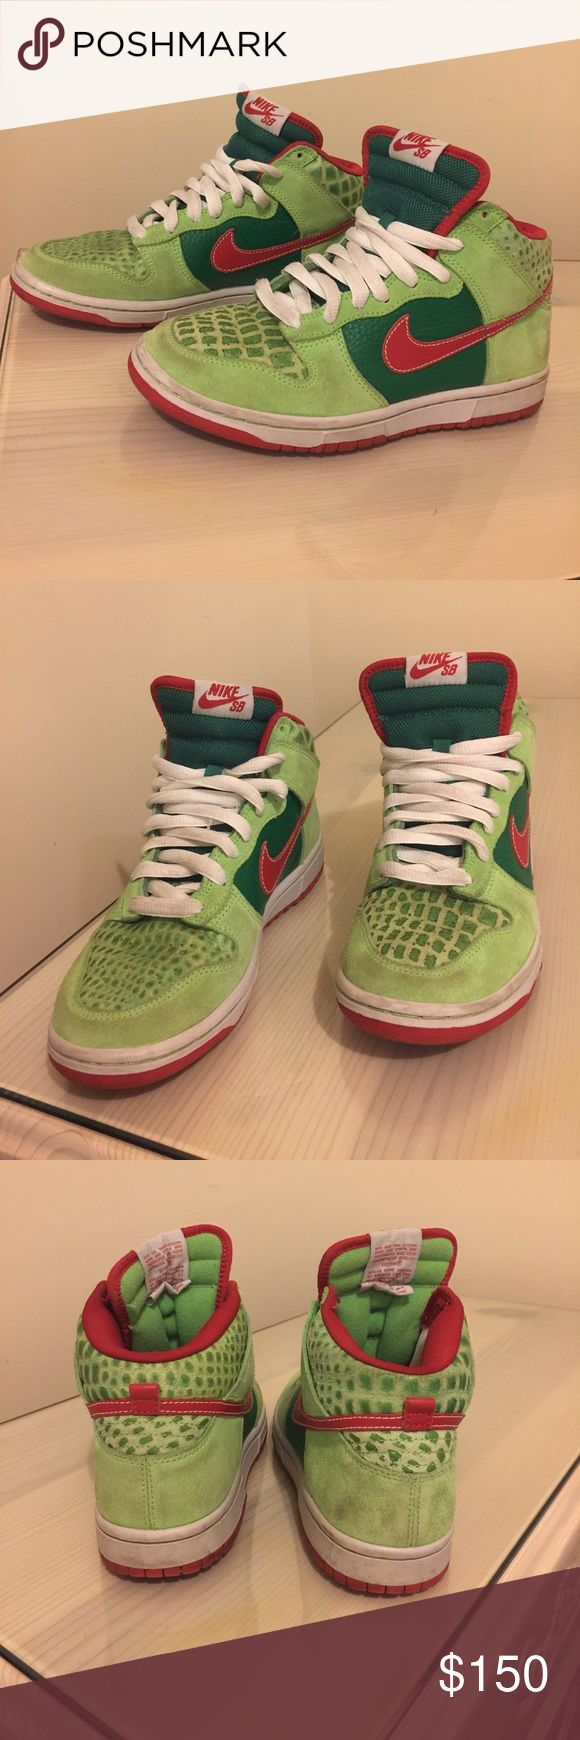 """NIKE SB HIGH TOP DUNKS """"Dr. Feelgood"""" Worn with love, green pebble and red Nike high top dunks. Very rare sneaker. Extremely comfortable. Some scuffs on both sides of shoes but not that noticeable when being worn. Nike Shoes Sneakers"""